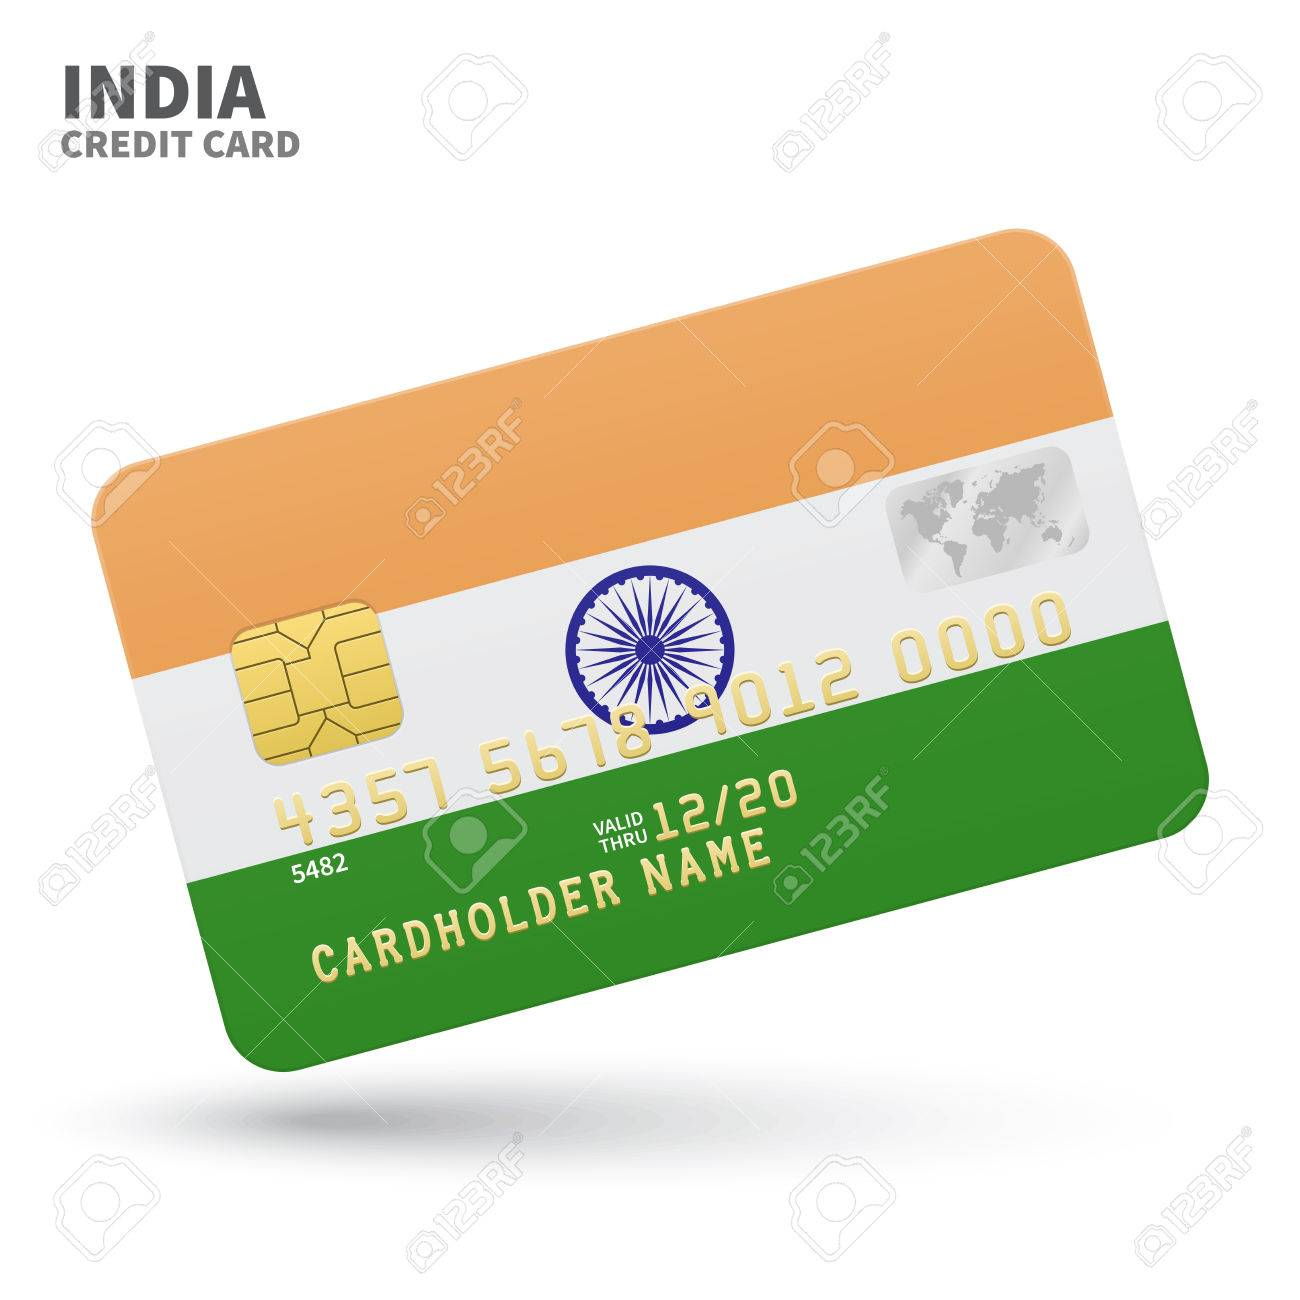 Business card bank choice image free business cards credit card with india flag background for bank presentations credit card with india flag background for magicingreecefo Images